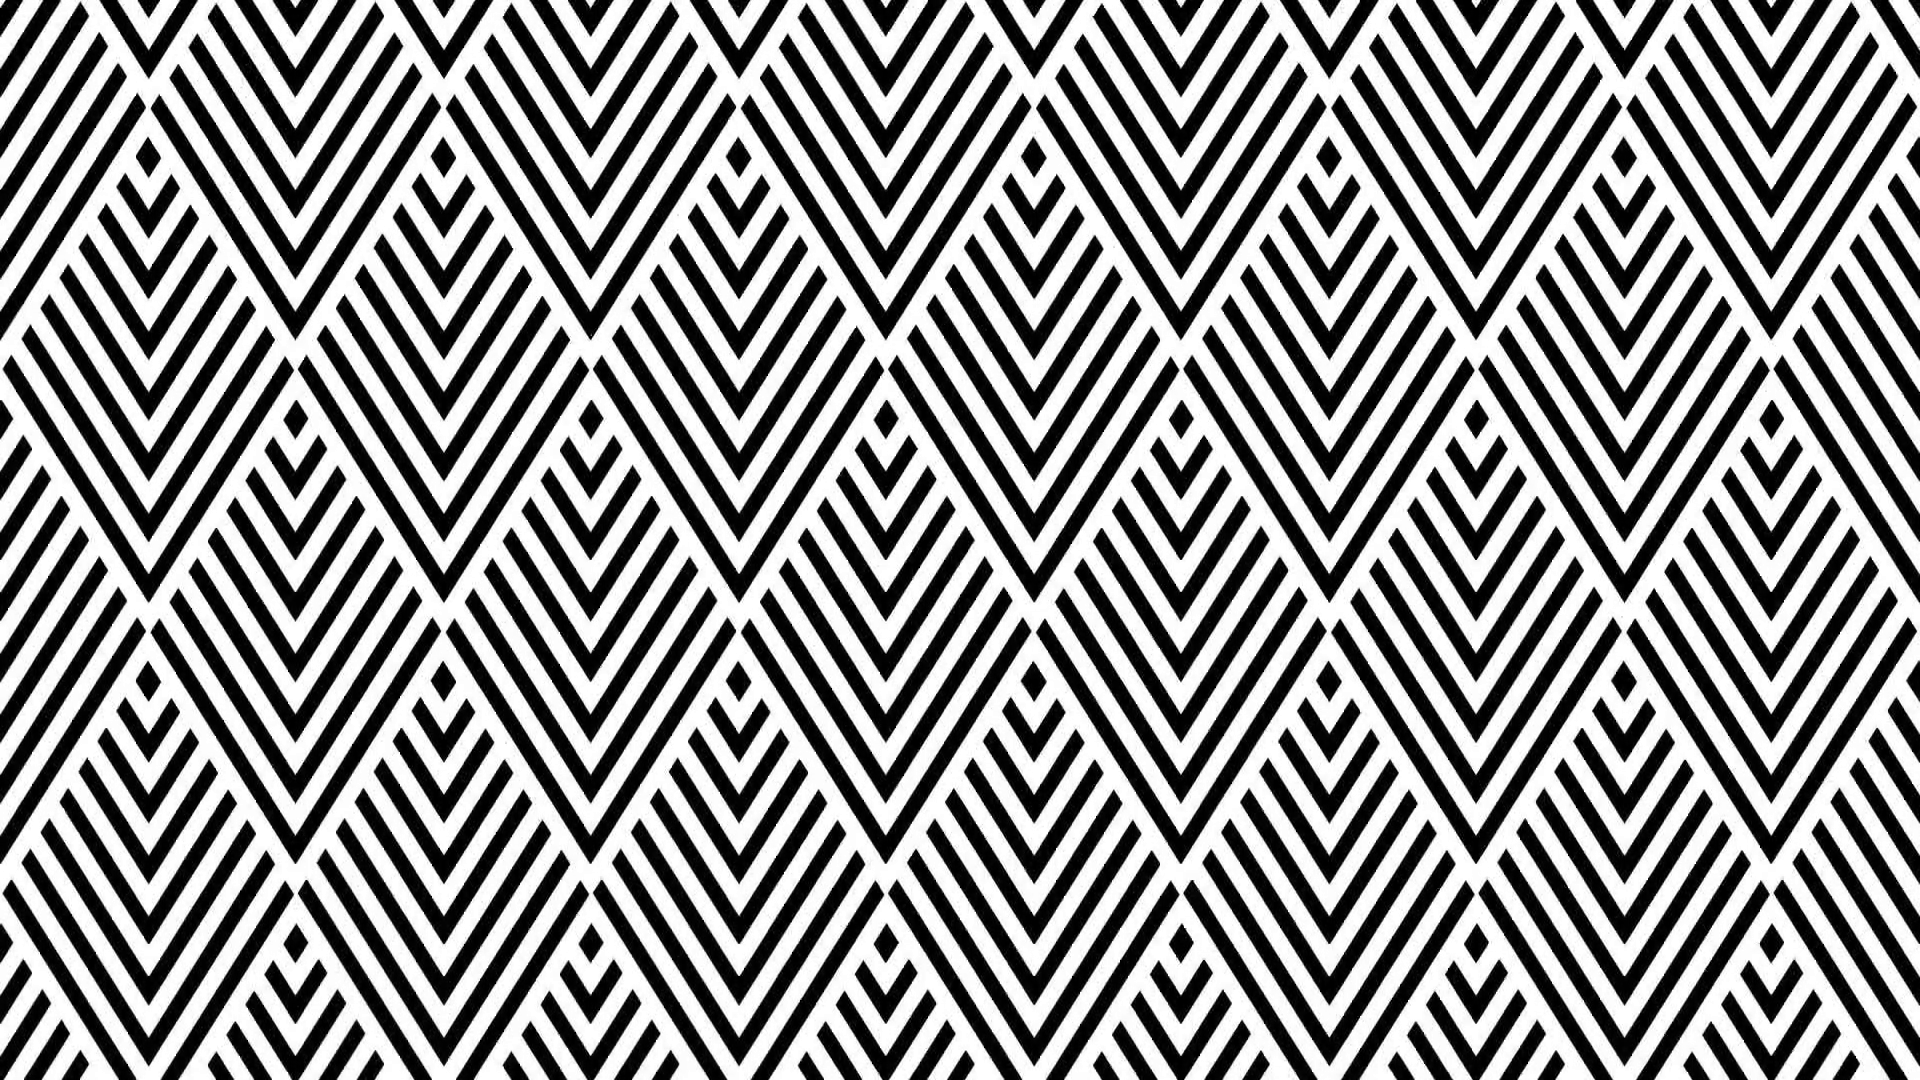 1920x1080 Vector Art Deco Pattern Background Motion Background